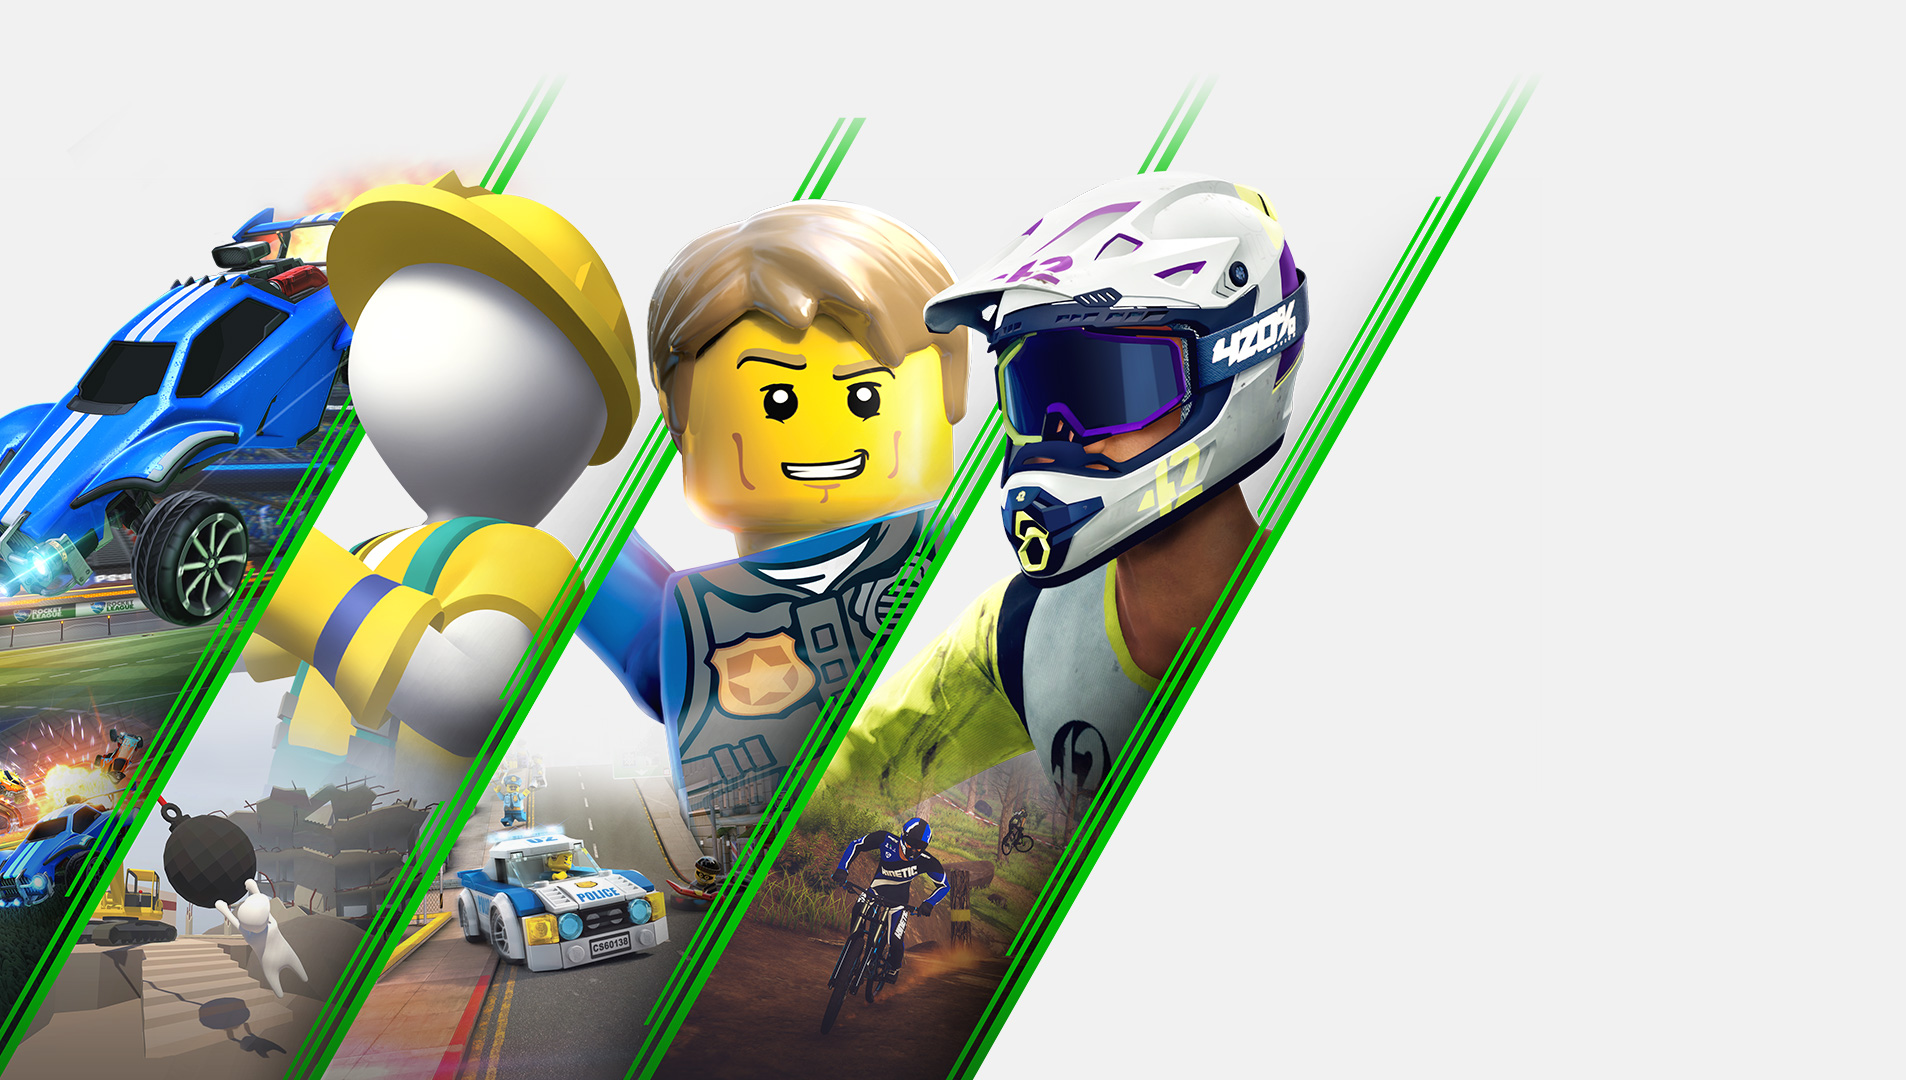 Collage of characters from Rocket League, Human Fall Flat, Lego City Undercover, Descenders, and Guacamelee 2